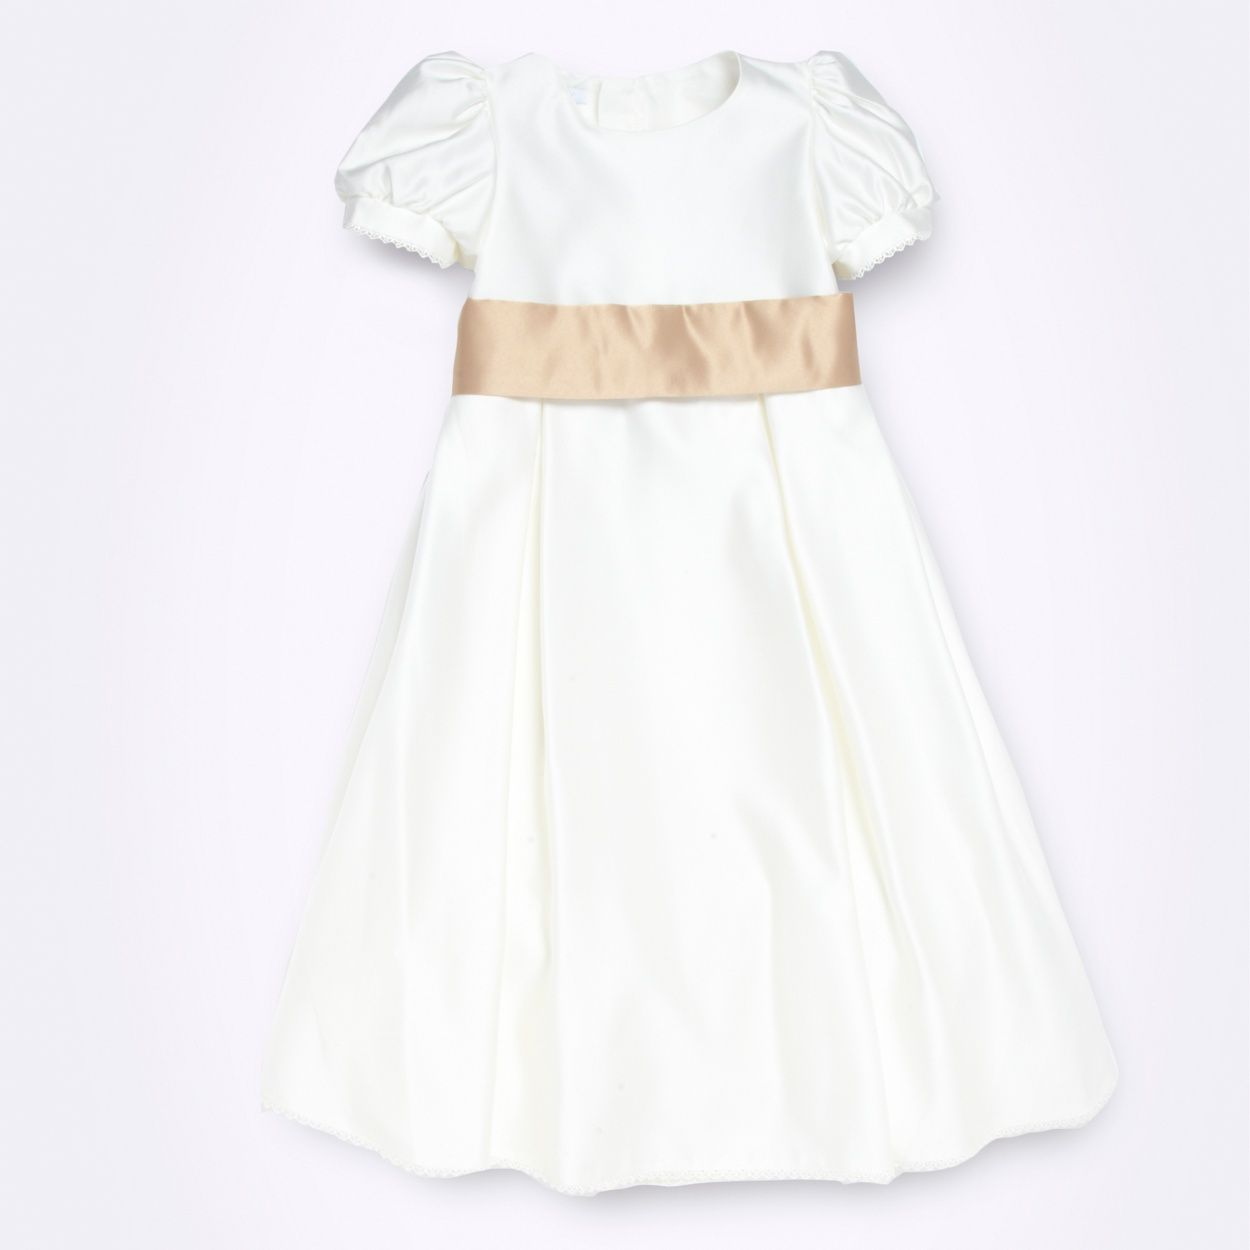 2e79185577b Tigerlily Girl s ivory flower girl dress- at Debenhams.com ...